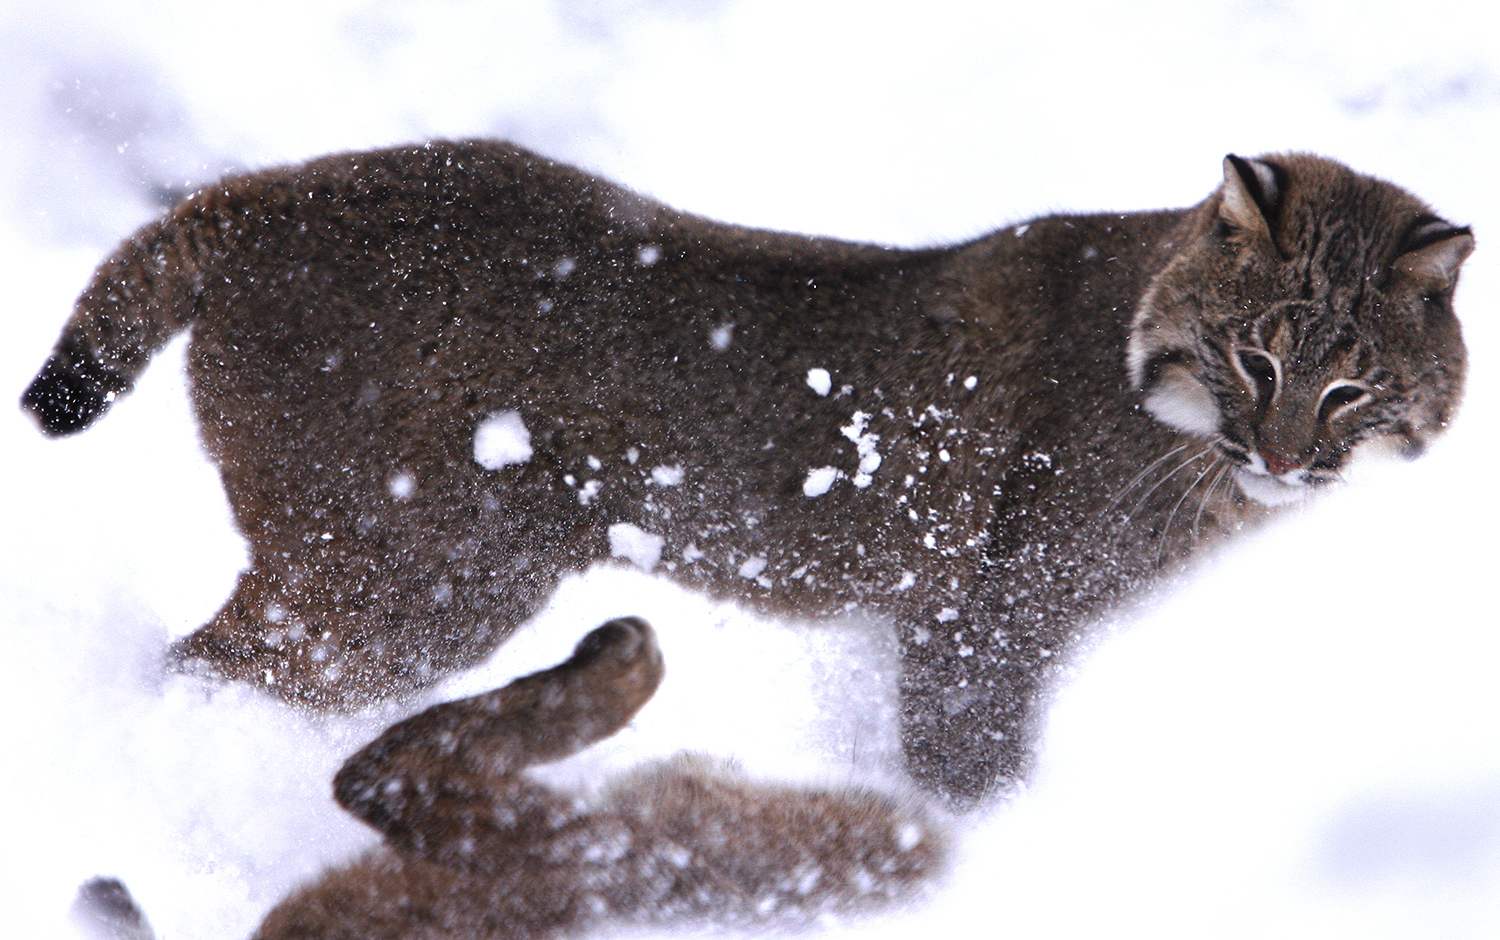 Nichole and Natasha, sister Bobcats who make their home at Springfield's Henson Robinson Zoo, enjoyed playing in the fresh snow inside their enclosure on Tuesday February 9, 2010. David Spencer/The State Journal-Register